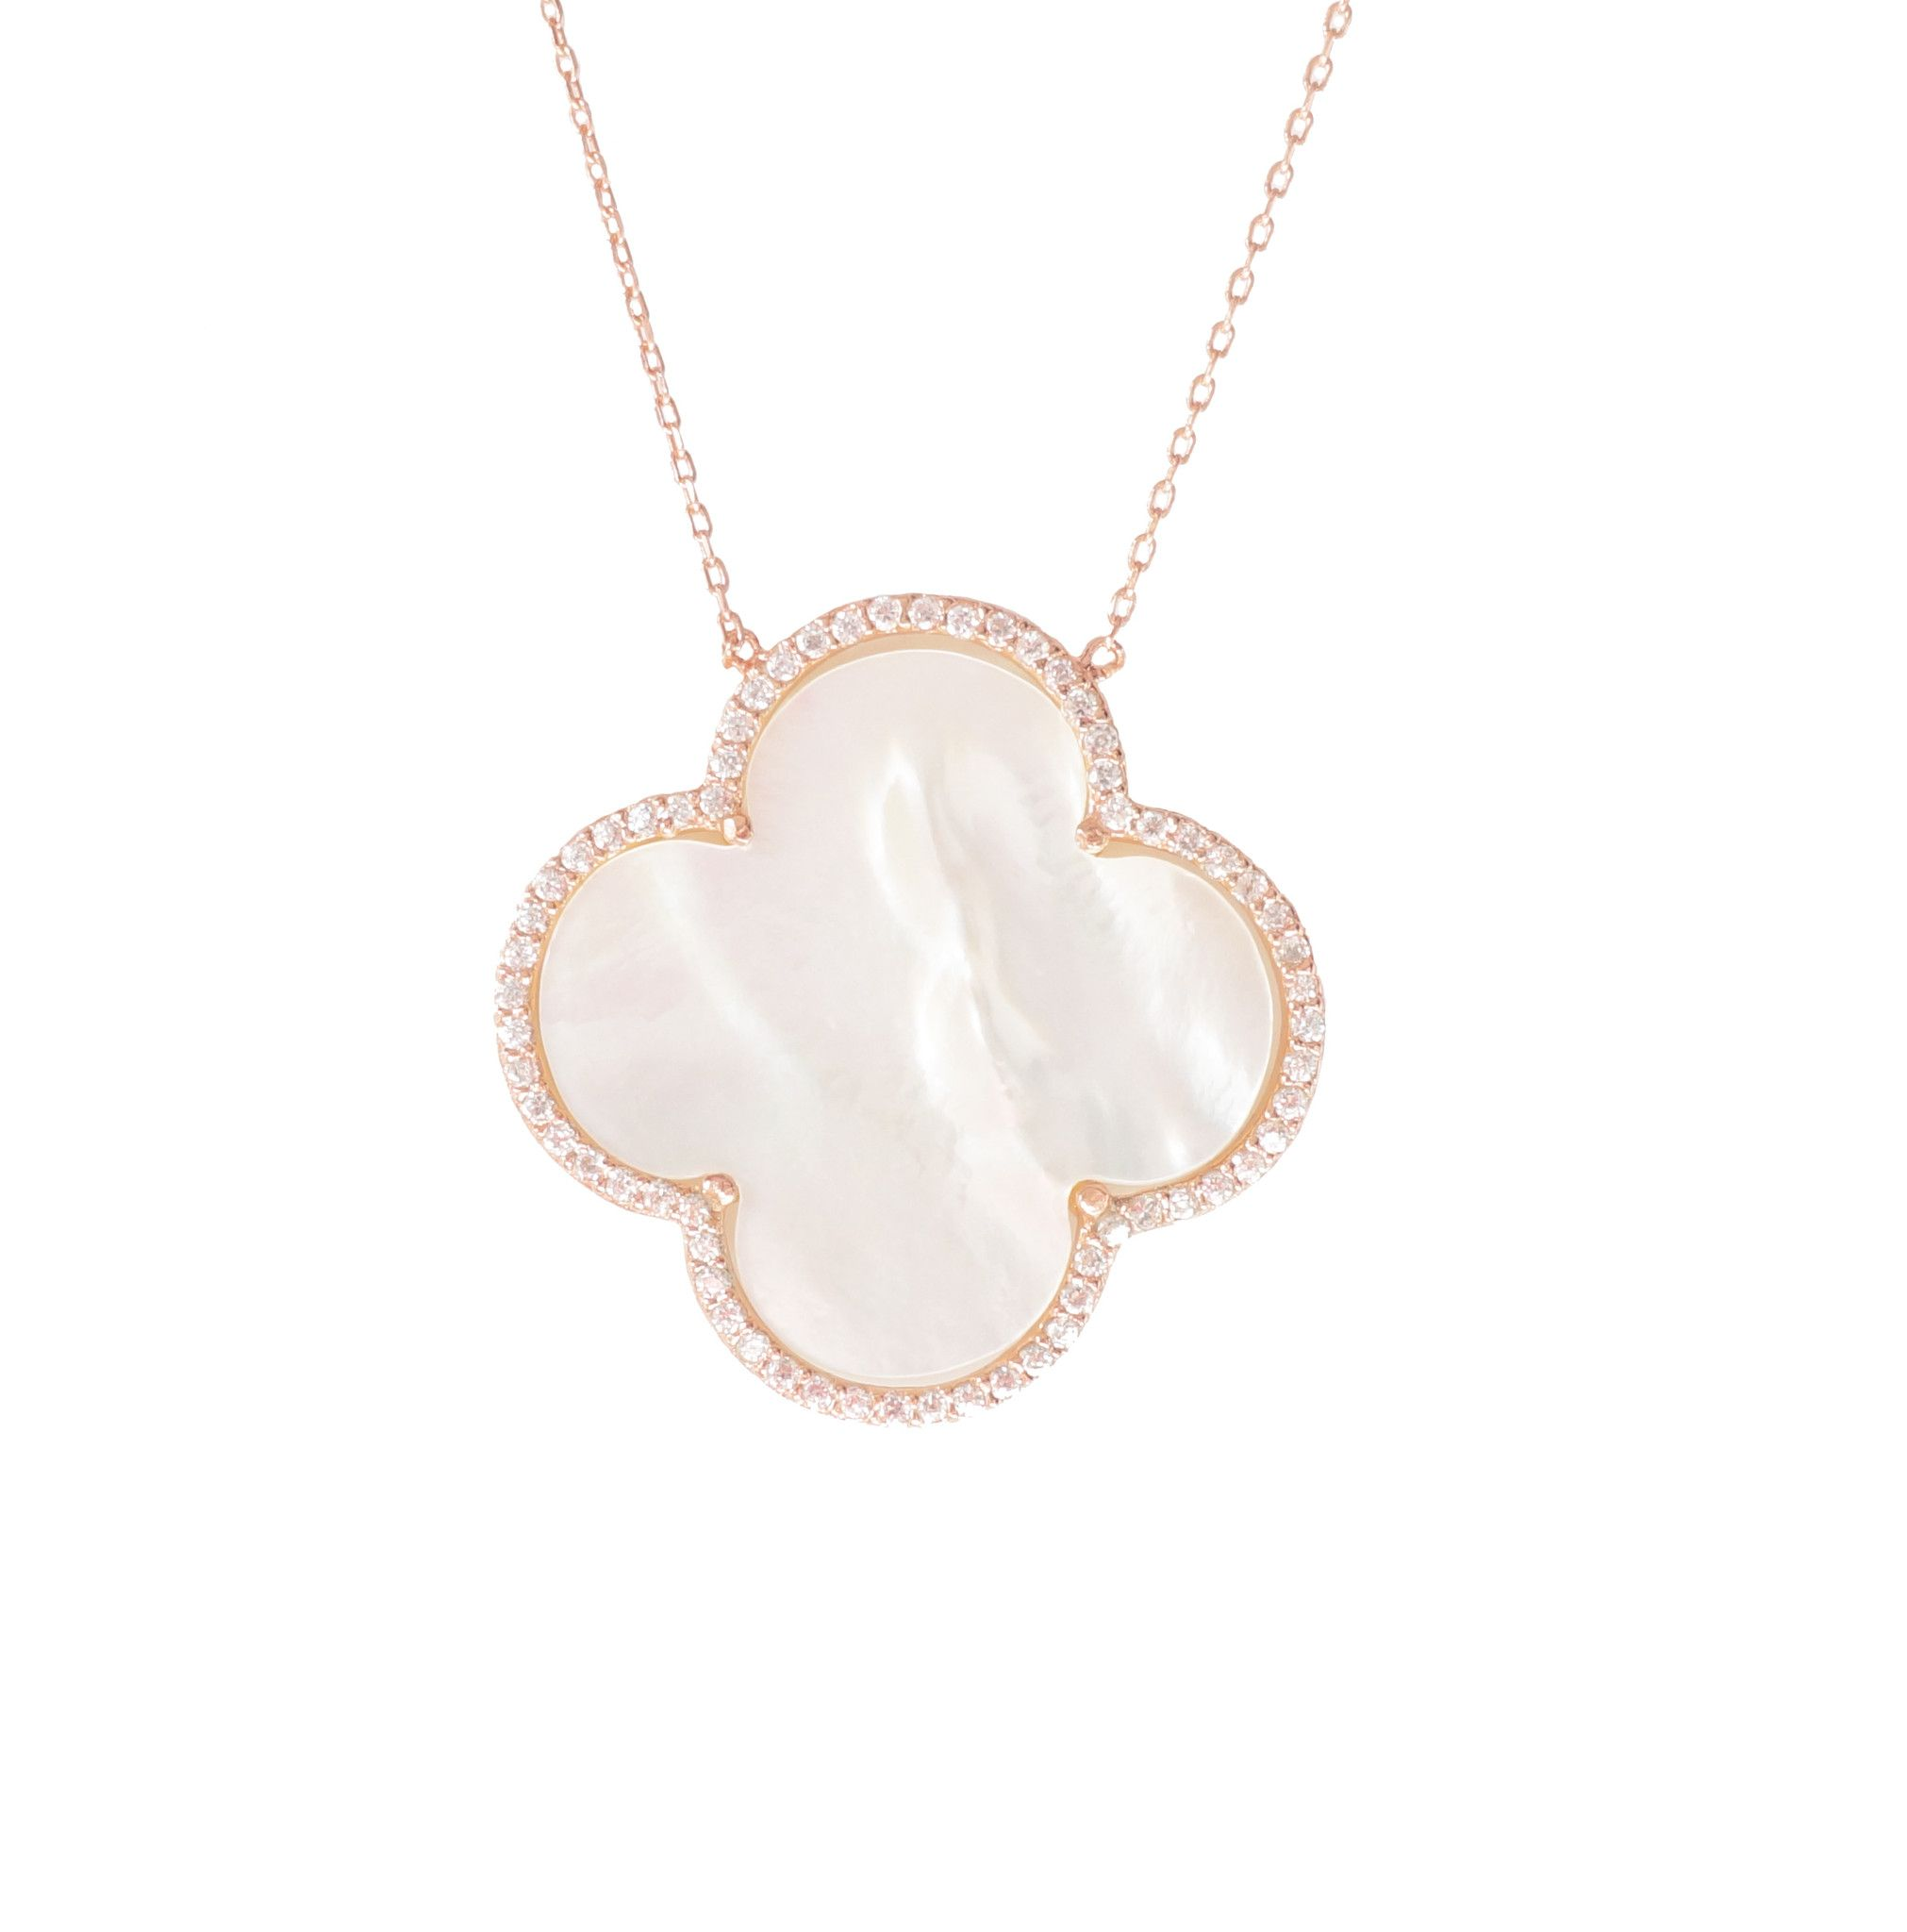 clover jewelry gallery four gold metallic lyst leaf pendant necklace in chanel